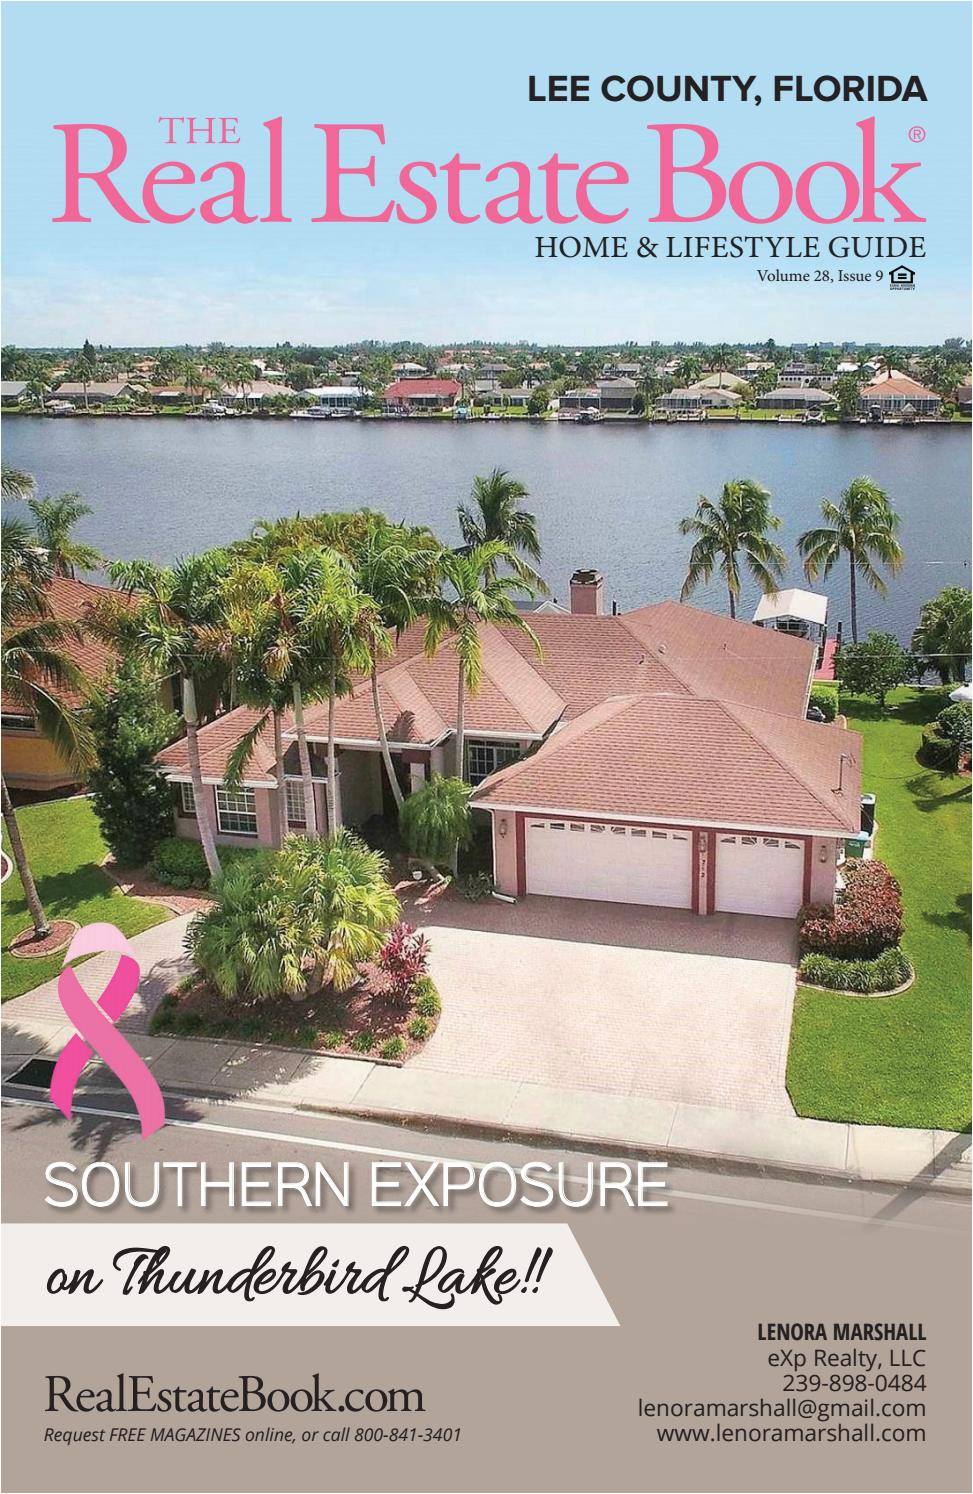 the real estate book of lee county fl vol 28 9 by real estate showcase inc issuu